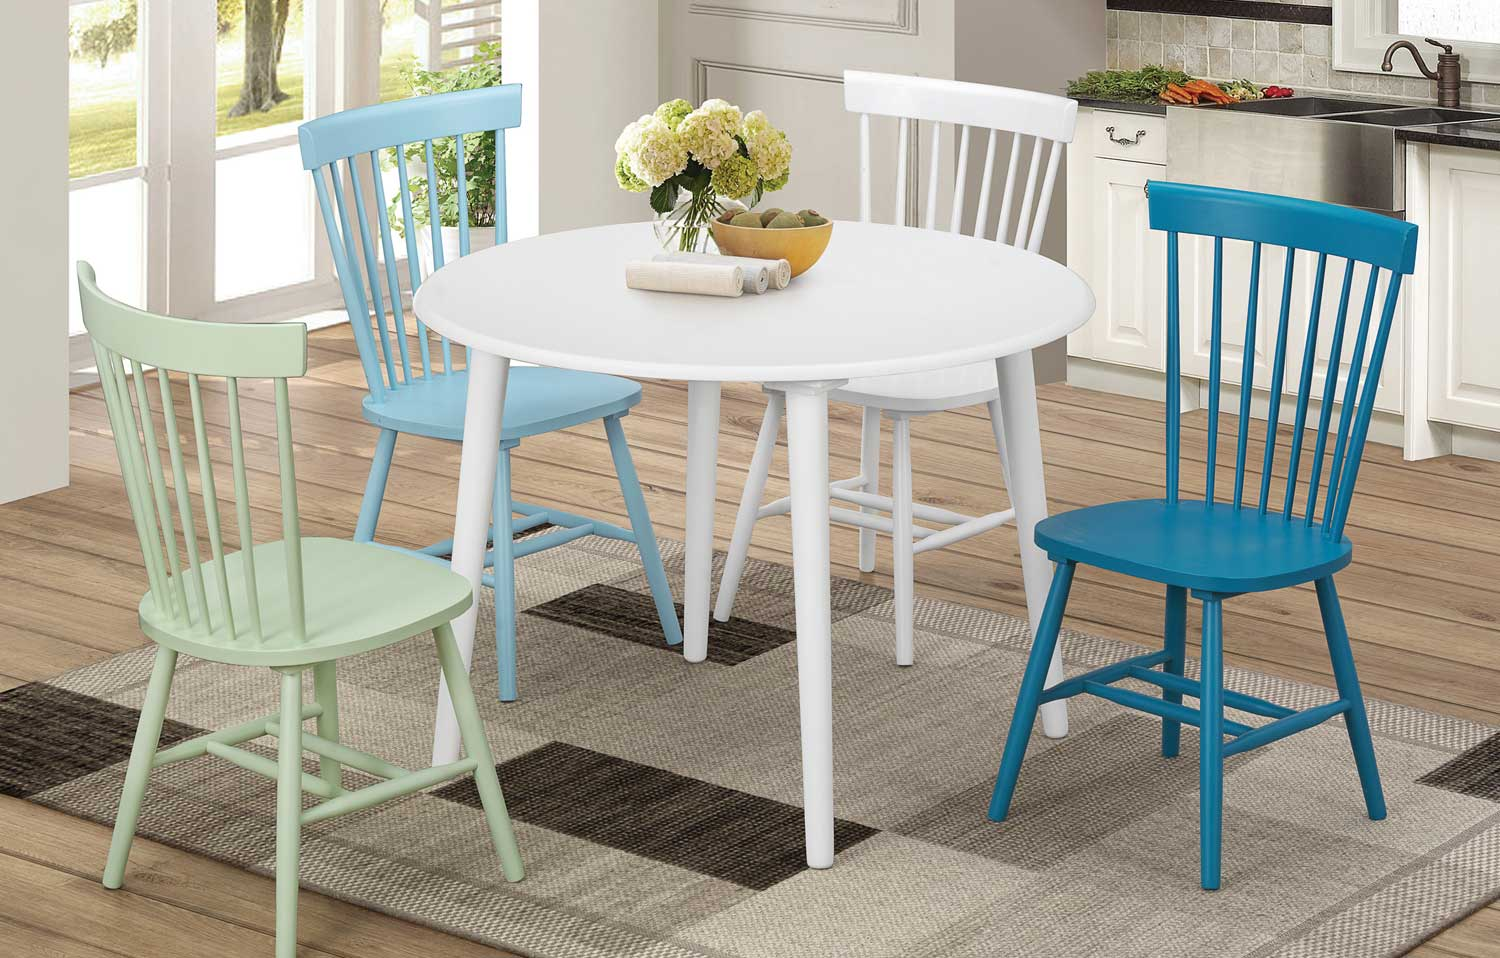 Coaster Emmett Dining Set with Round Table - White